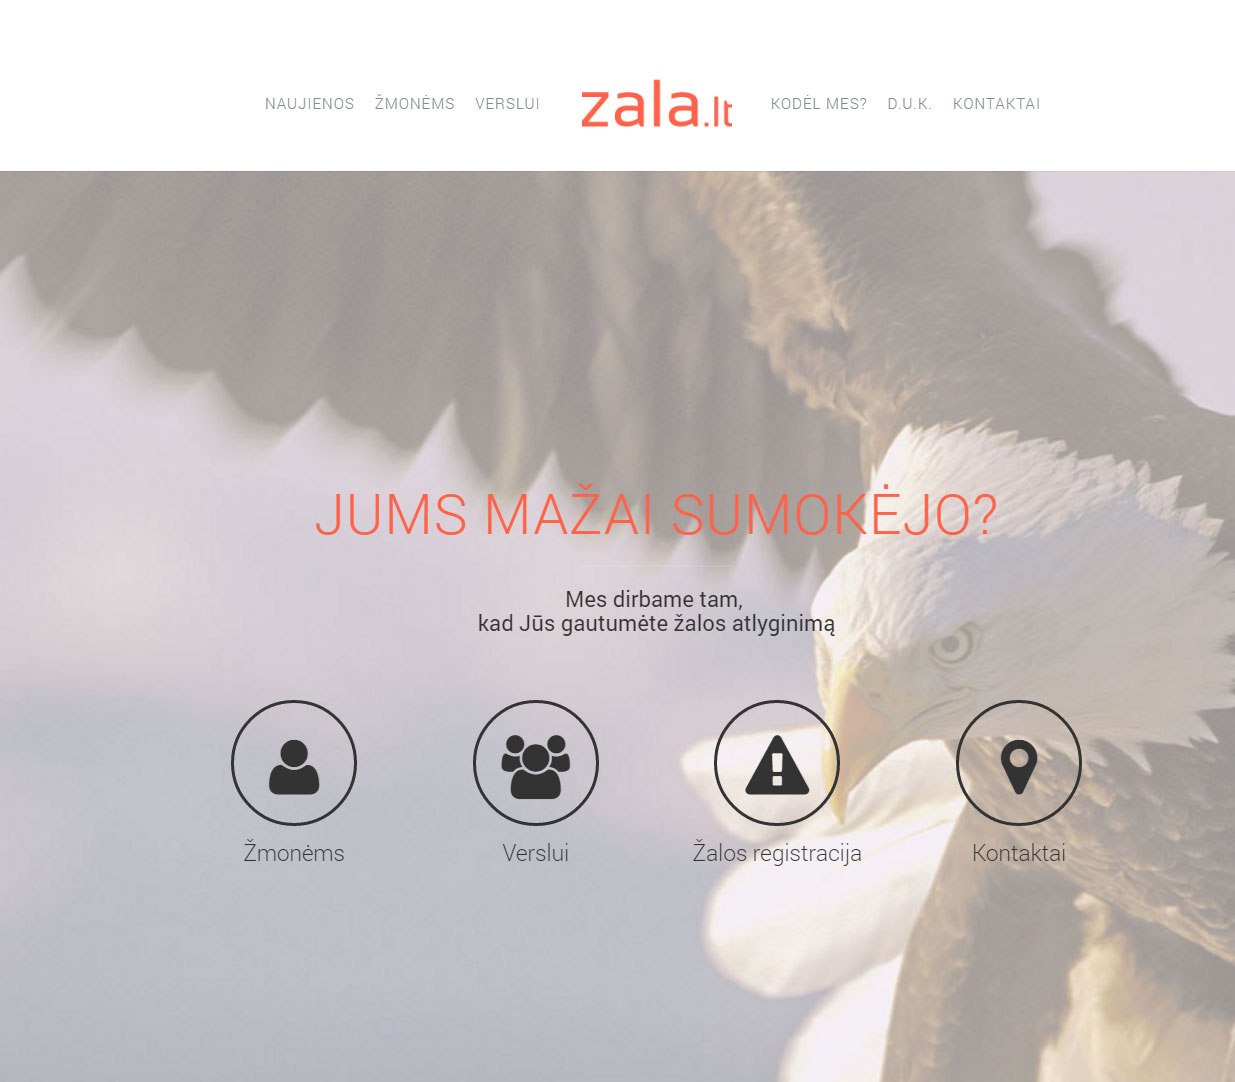 zala.lt - lawyers working with damage and compensation cases